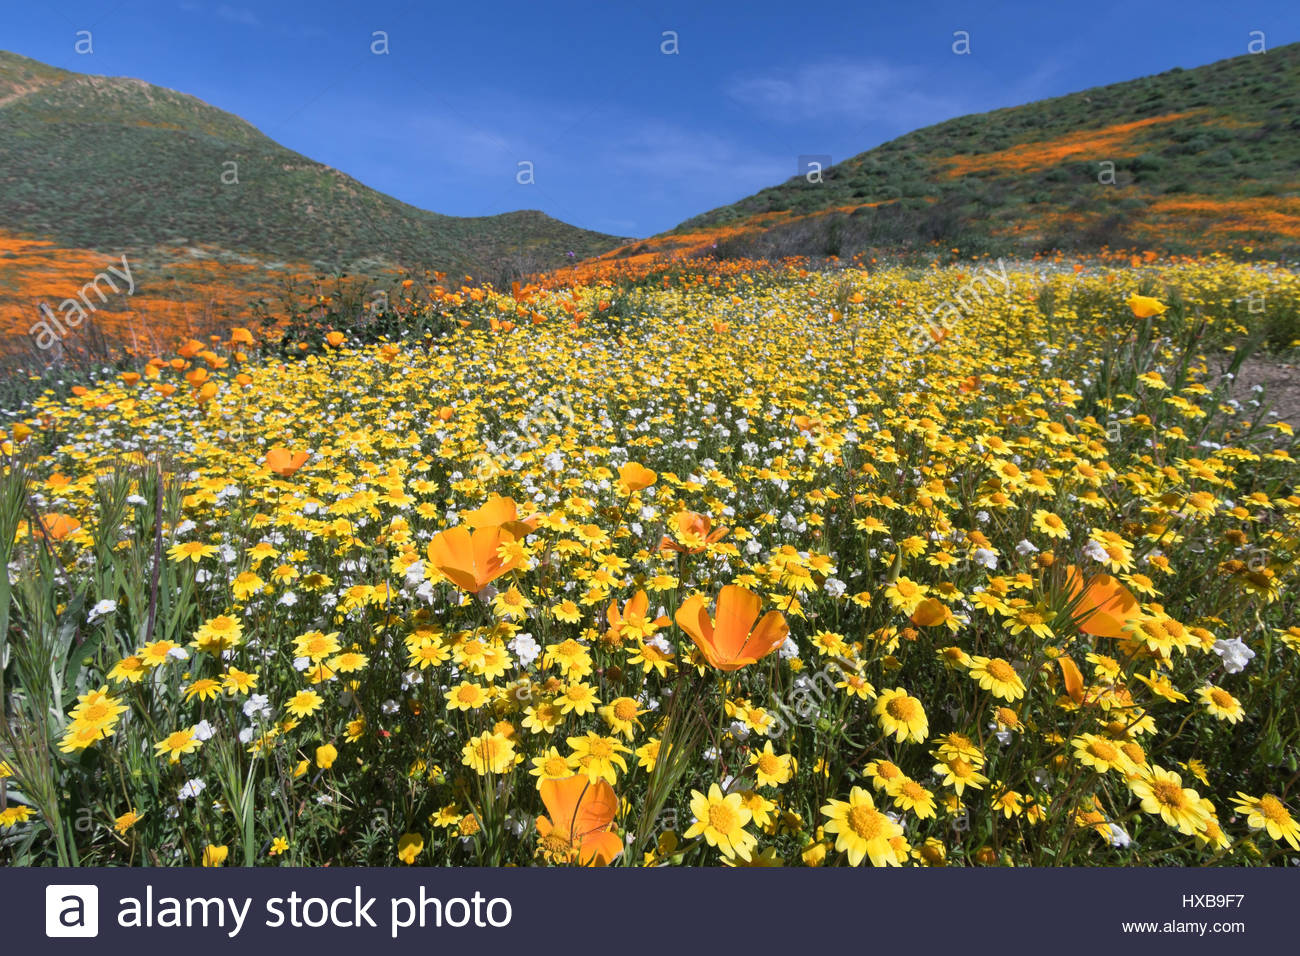 California Golden Poppy and Goldfields blooming in Walker Canyon, Lake Elsinore, CA - Stock Image